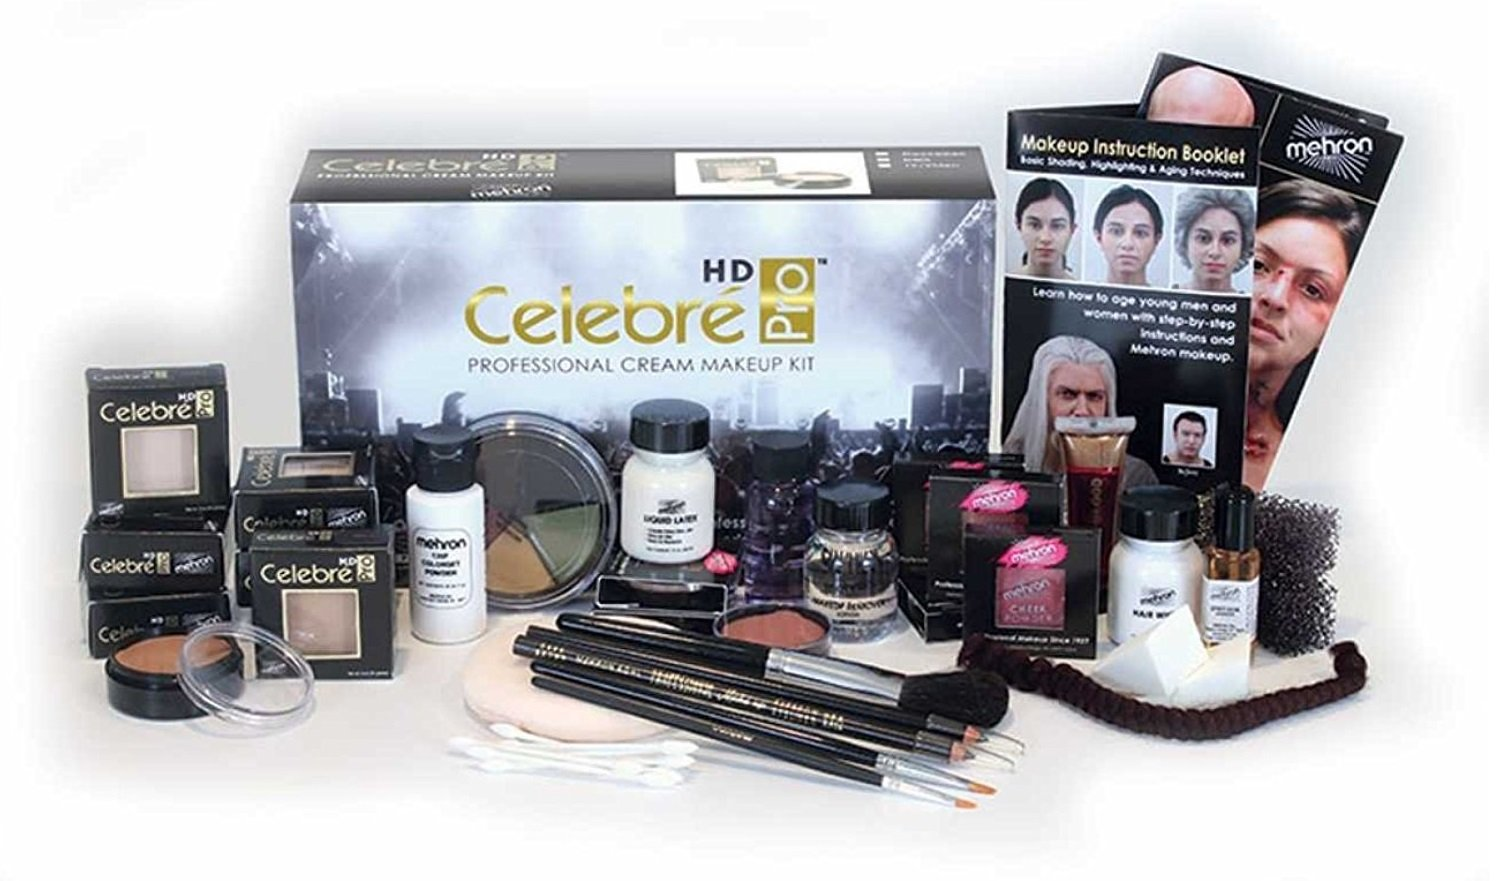 Mehron Celebré Professional HD Cream Makeup Kit |Complete Makeup Artist Beauty Set for Theatre, Stage, Movies, Special Effects, Videos, Photography|Skin, Eyes & Hair Contouring (Caucasian) by Mehron (Image #1)